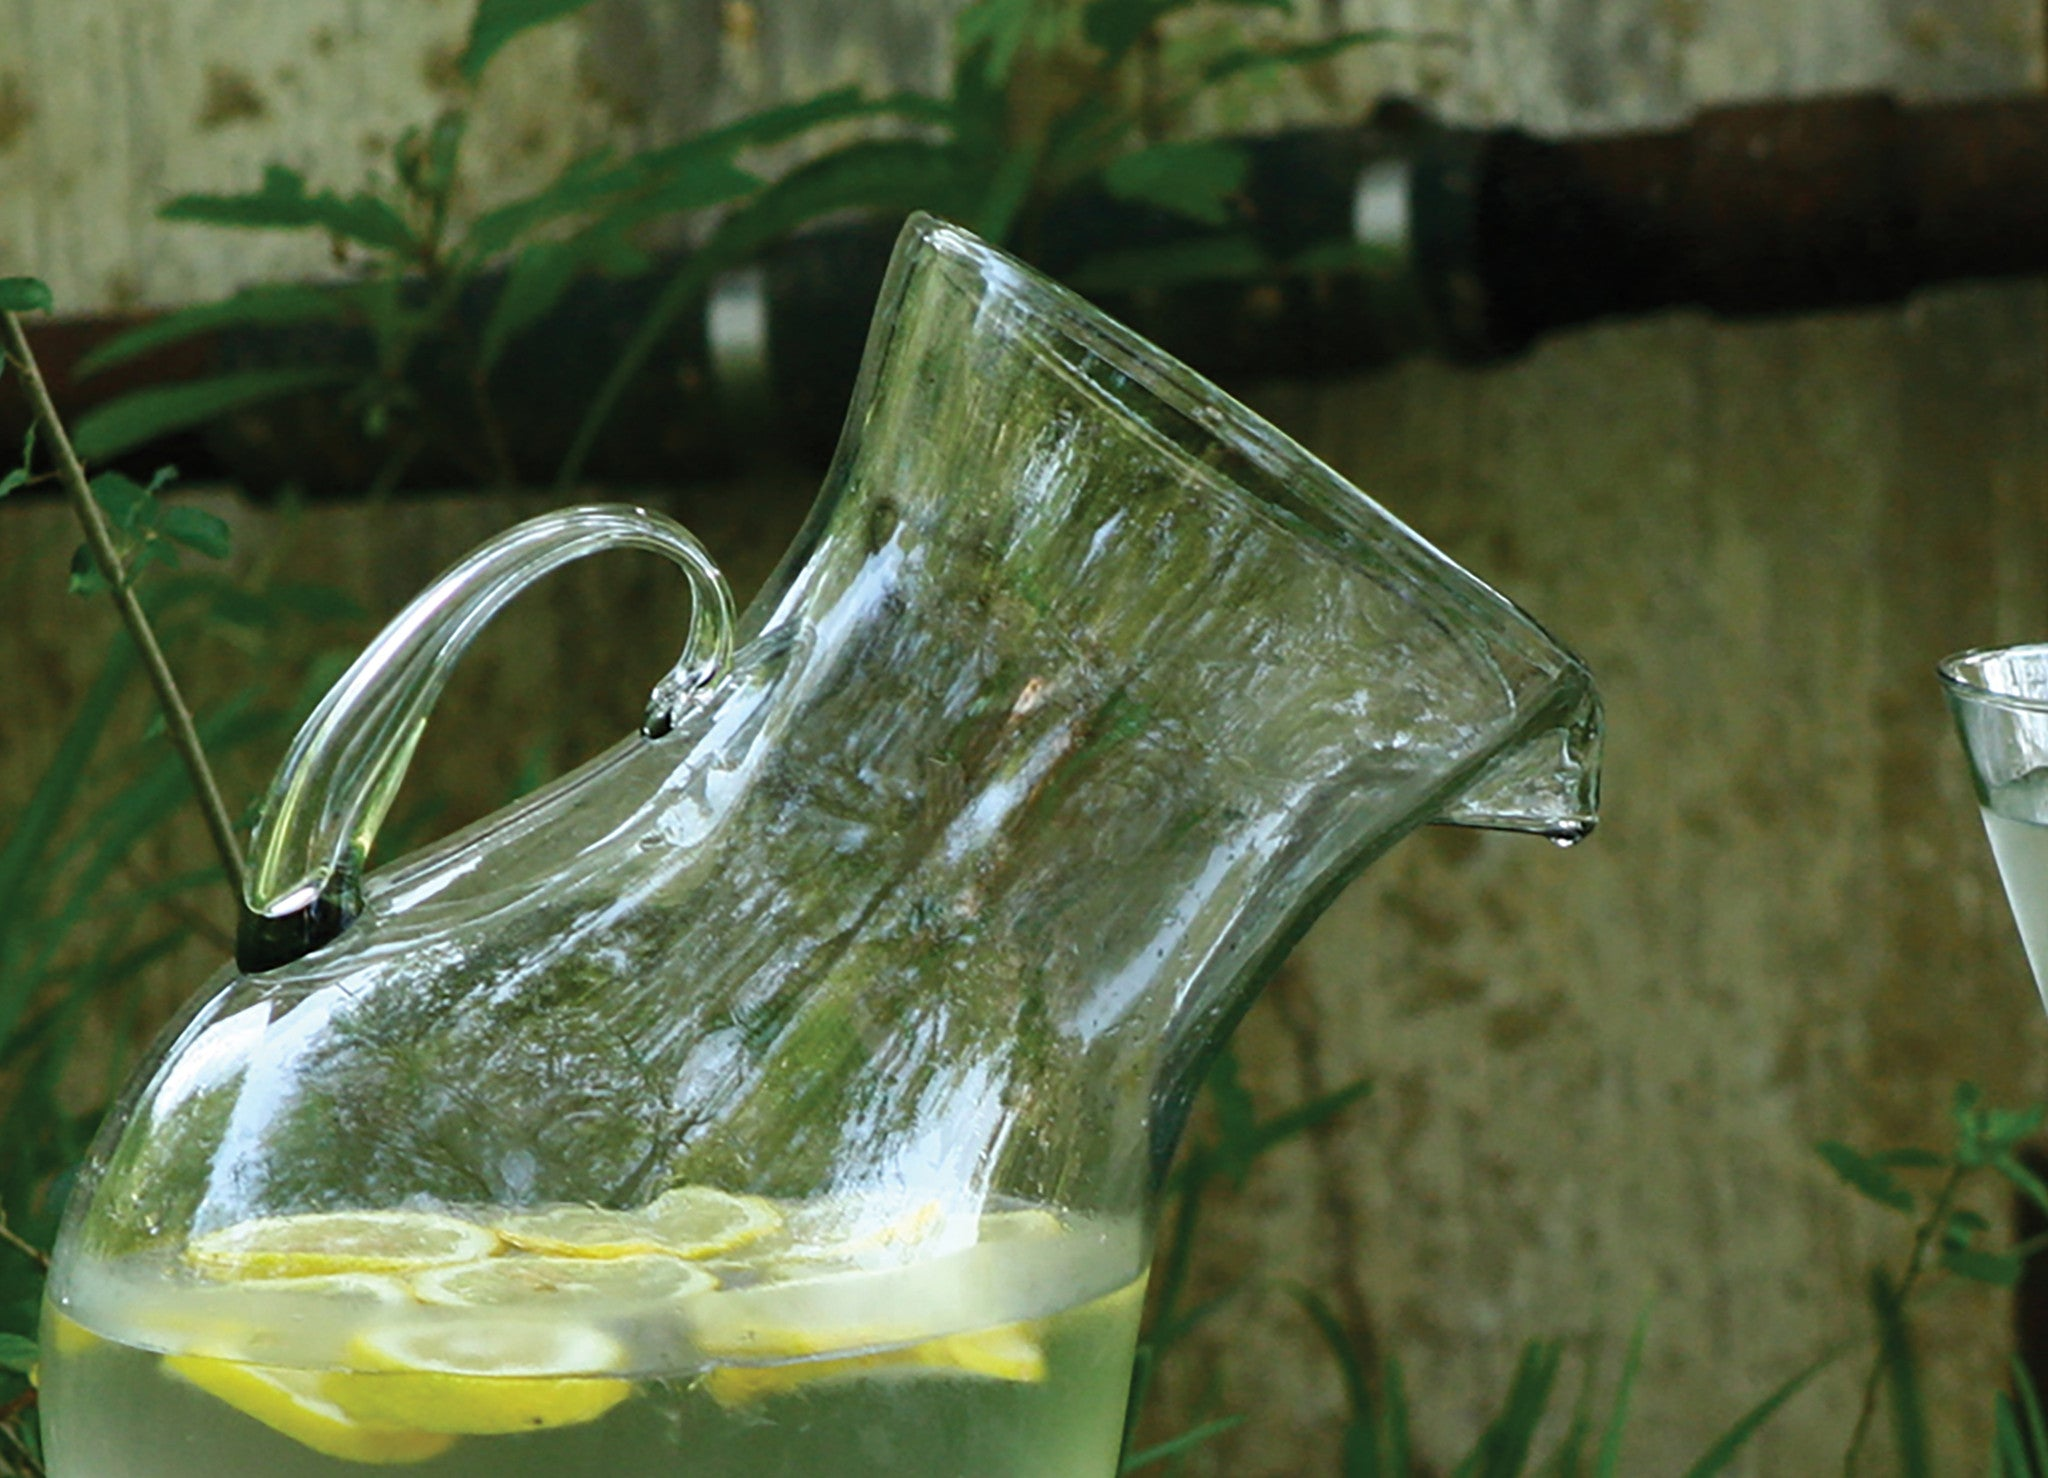 Large Modern Tilted Glass Beverage Pitcher